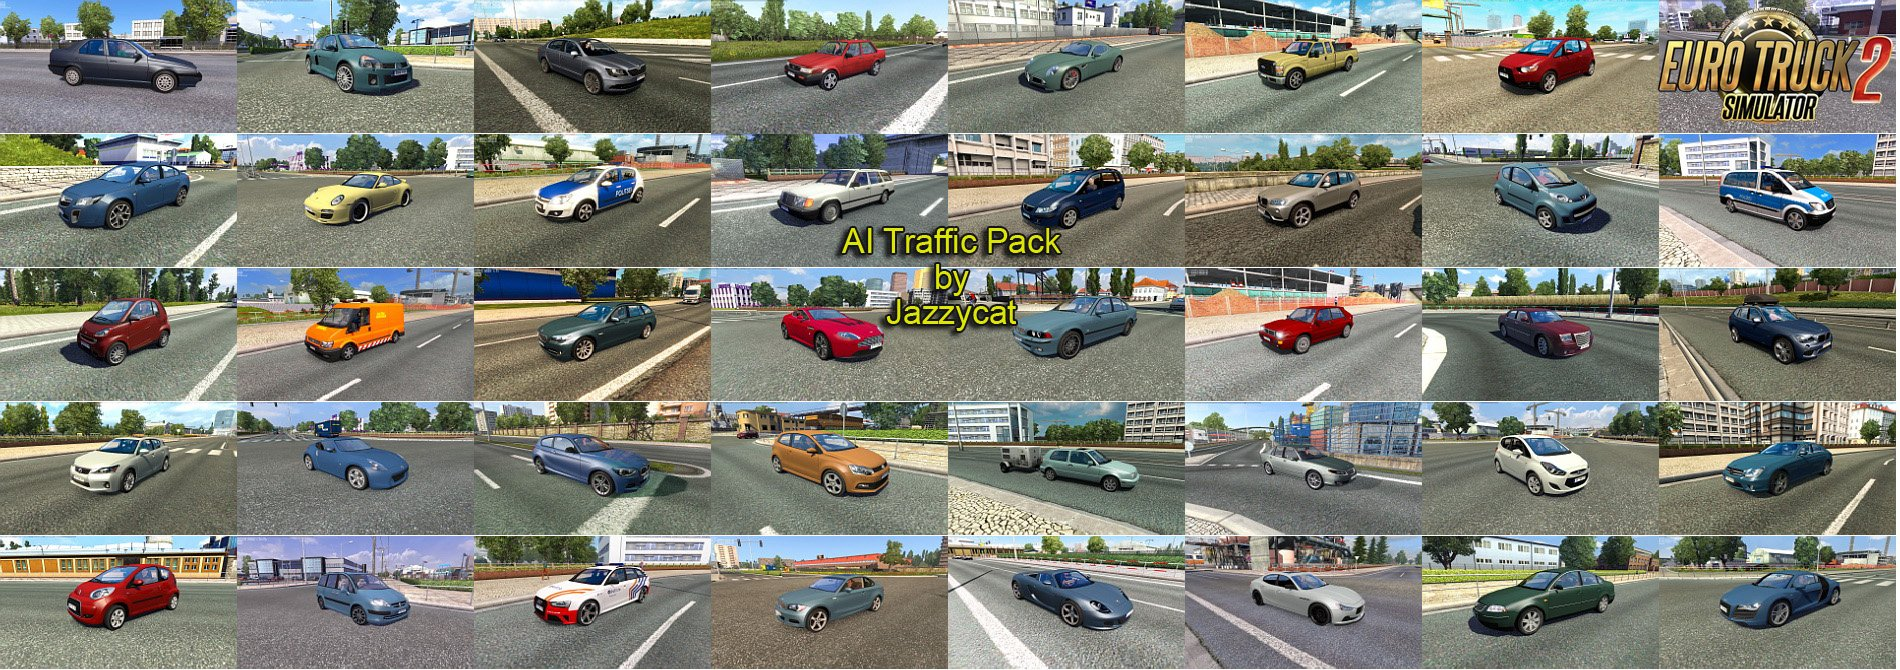 AI Traffic Pack v5.6 by Jazzycat